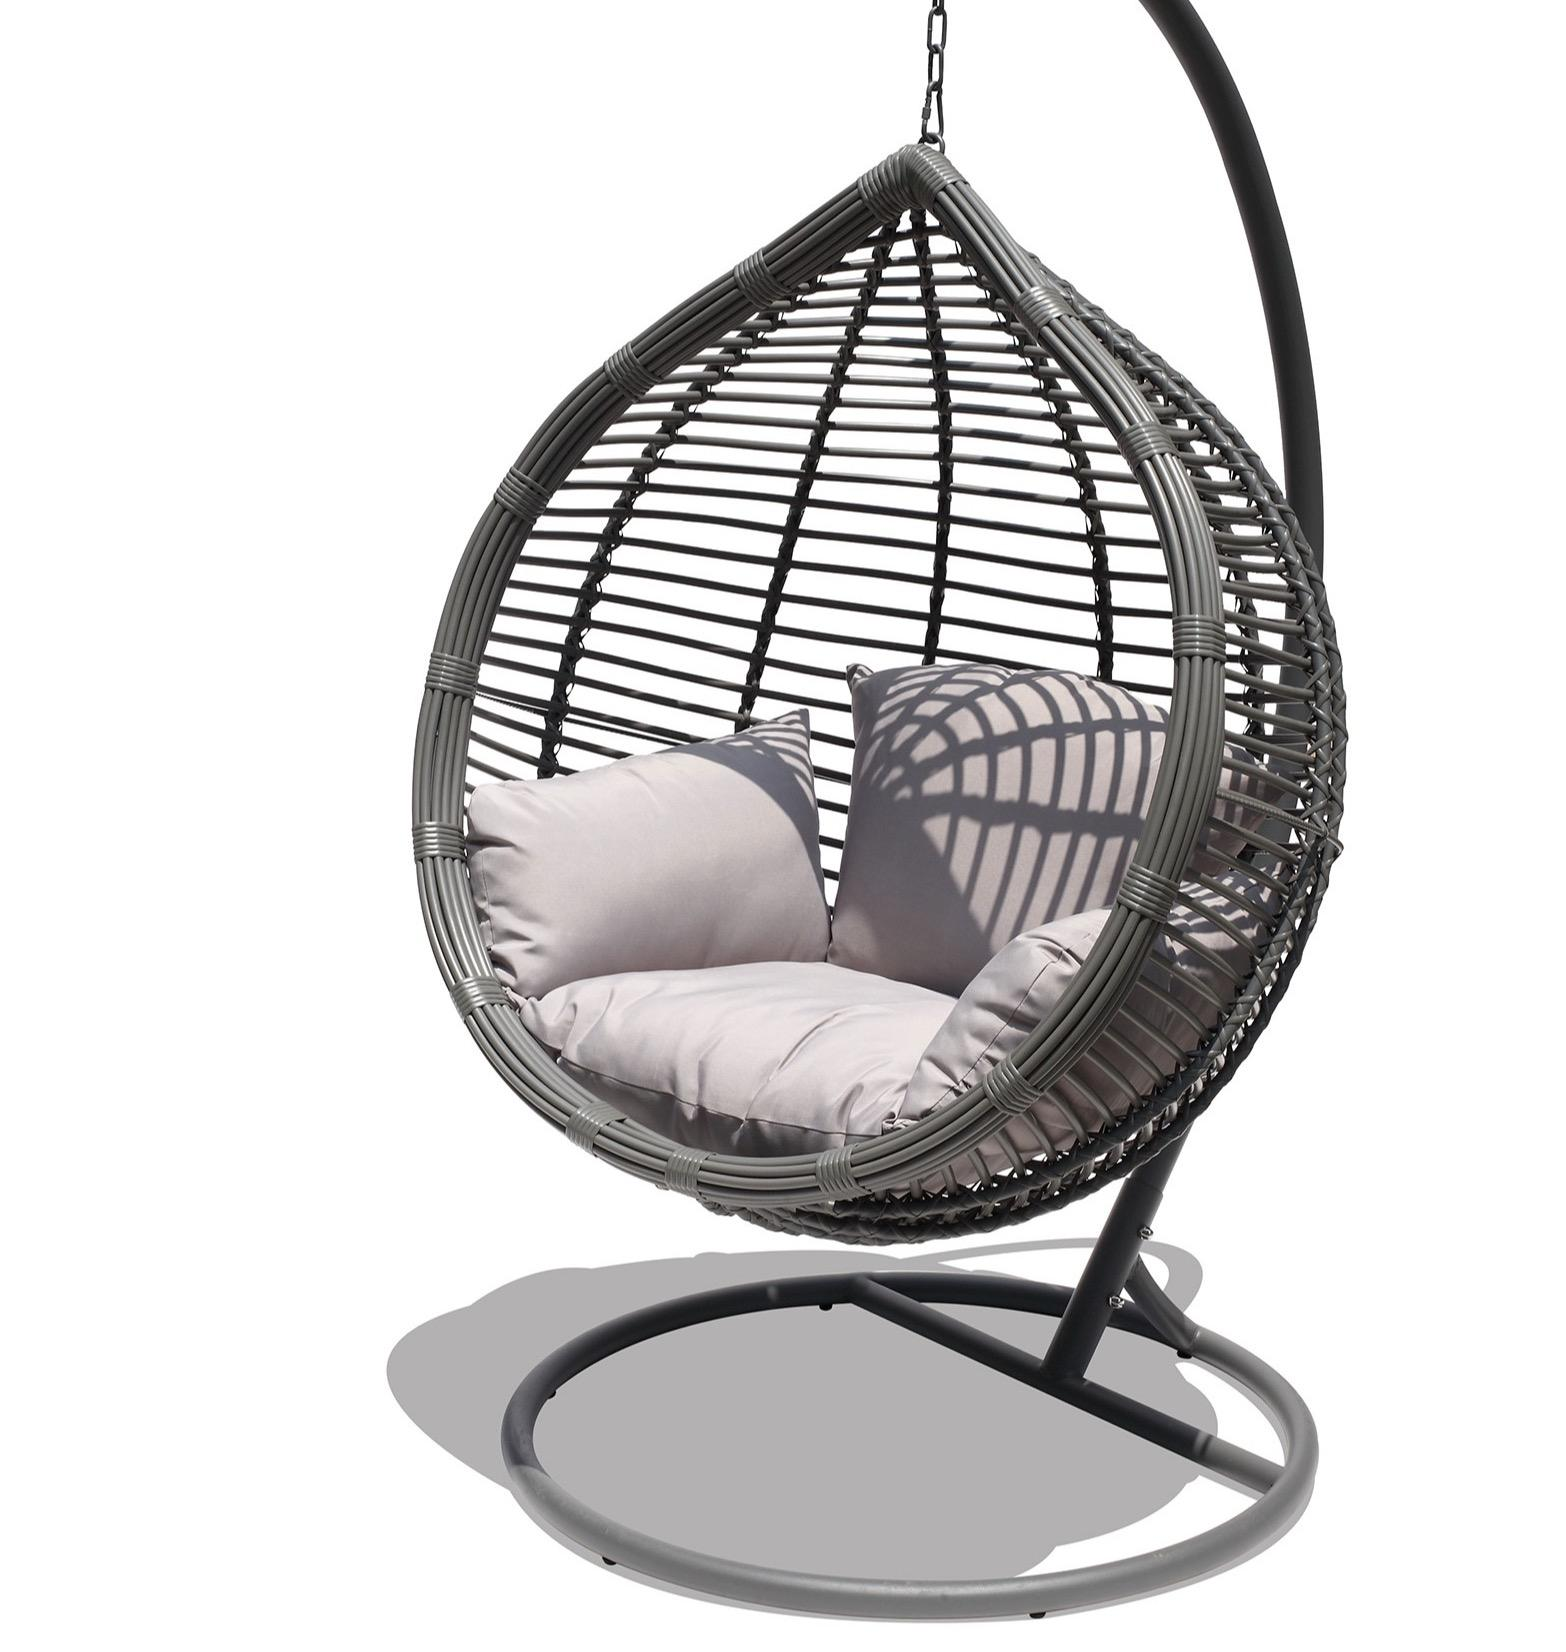 Outdoor high-quality waterproof thick cushion single seat garden furniture rattan patio swings hanging egg chair with stand